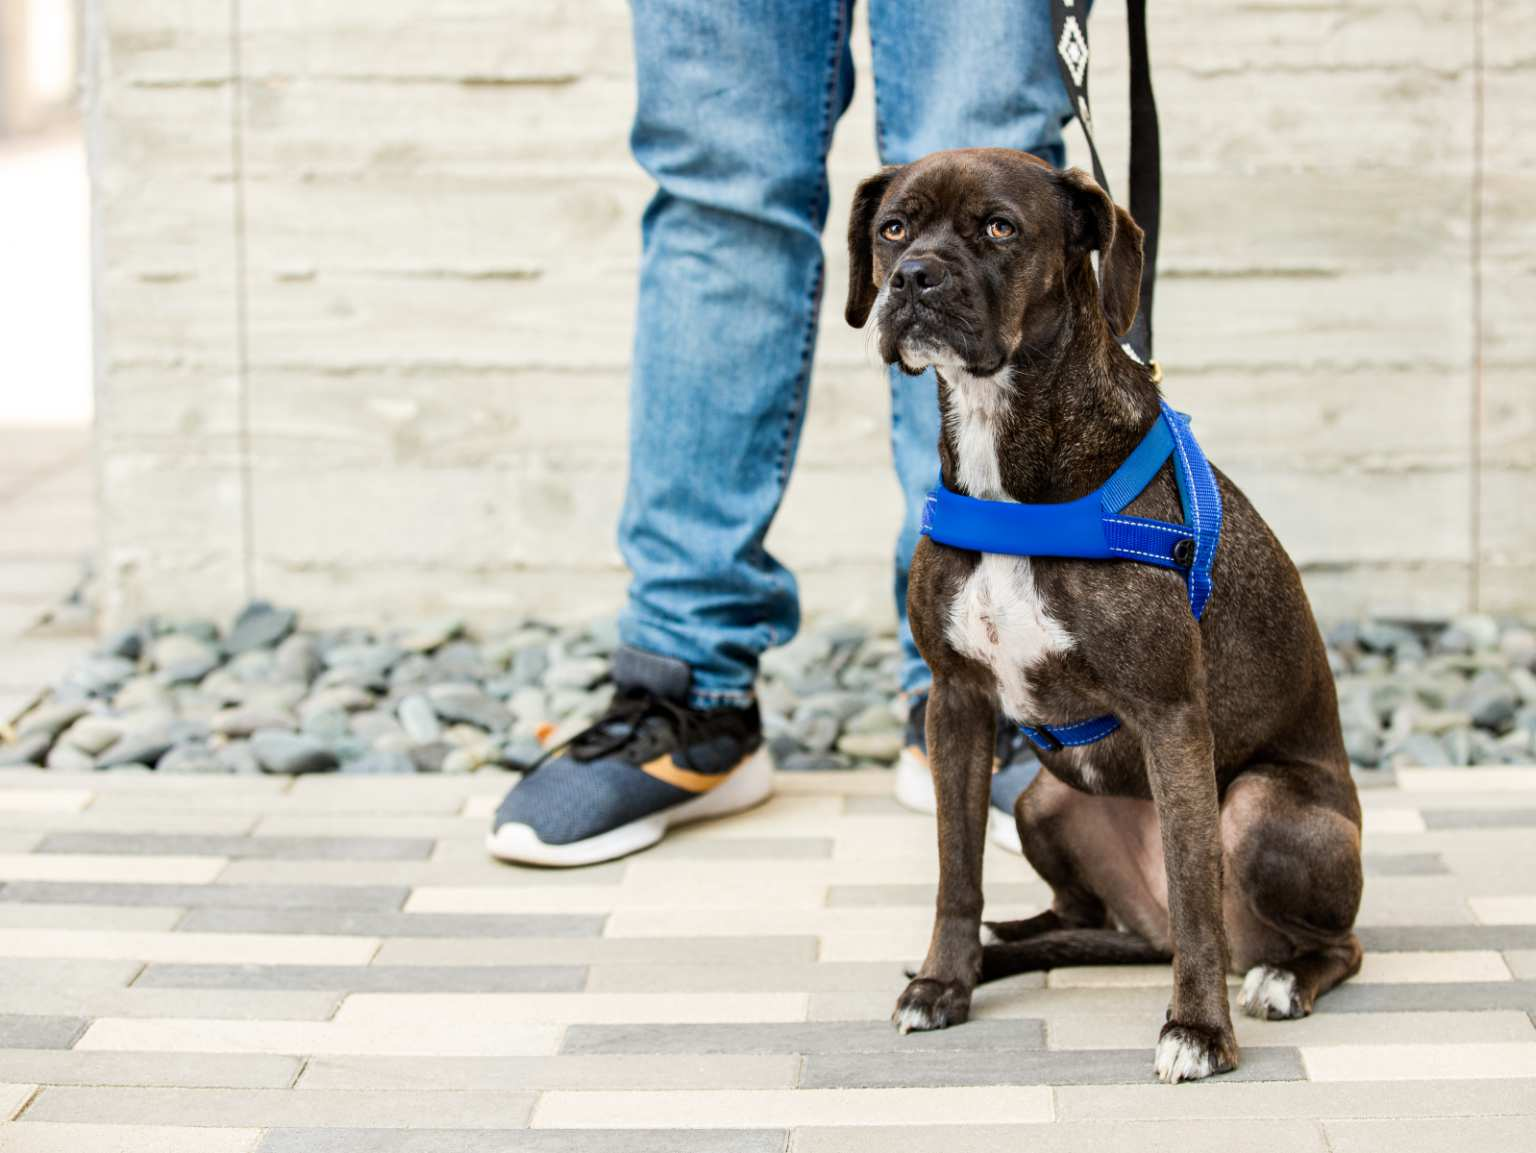 A Brindle Boxer dog wearing a blue harness